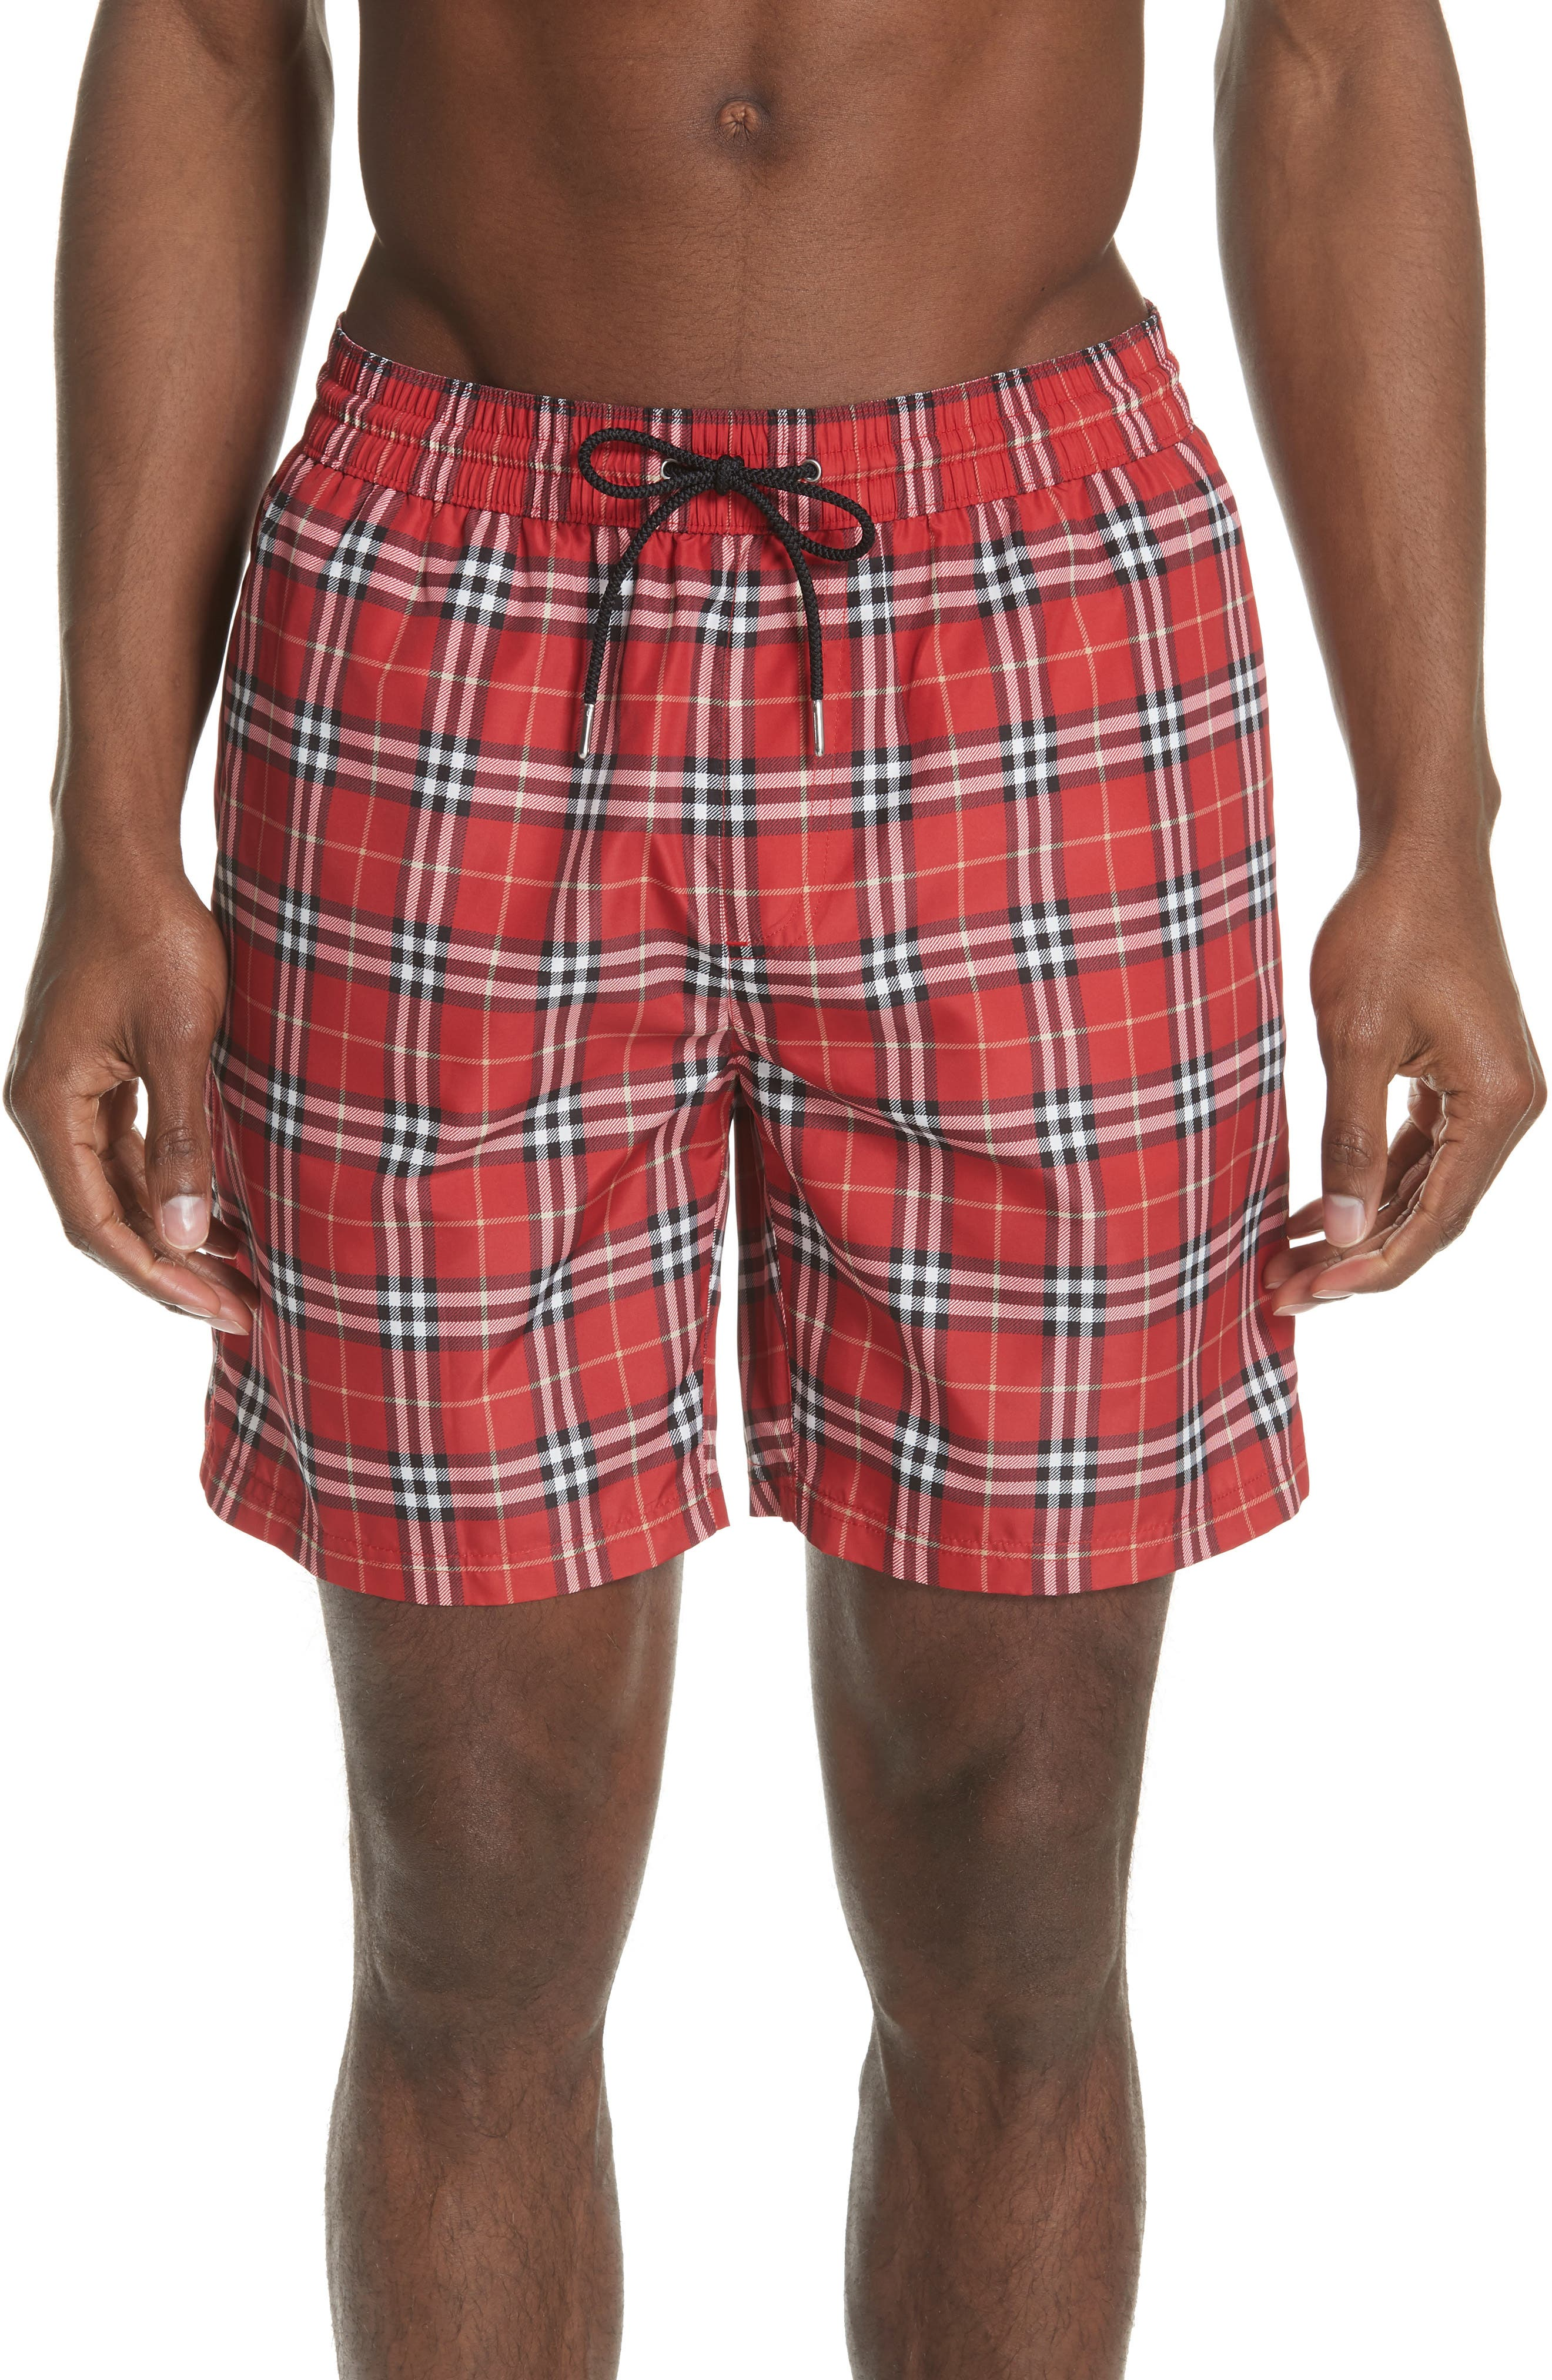 Guides New Check Swim Trunks,                         Main,                         color, Parade Red